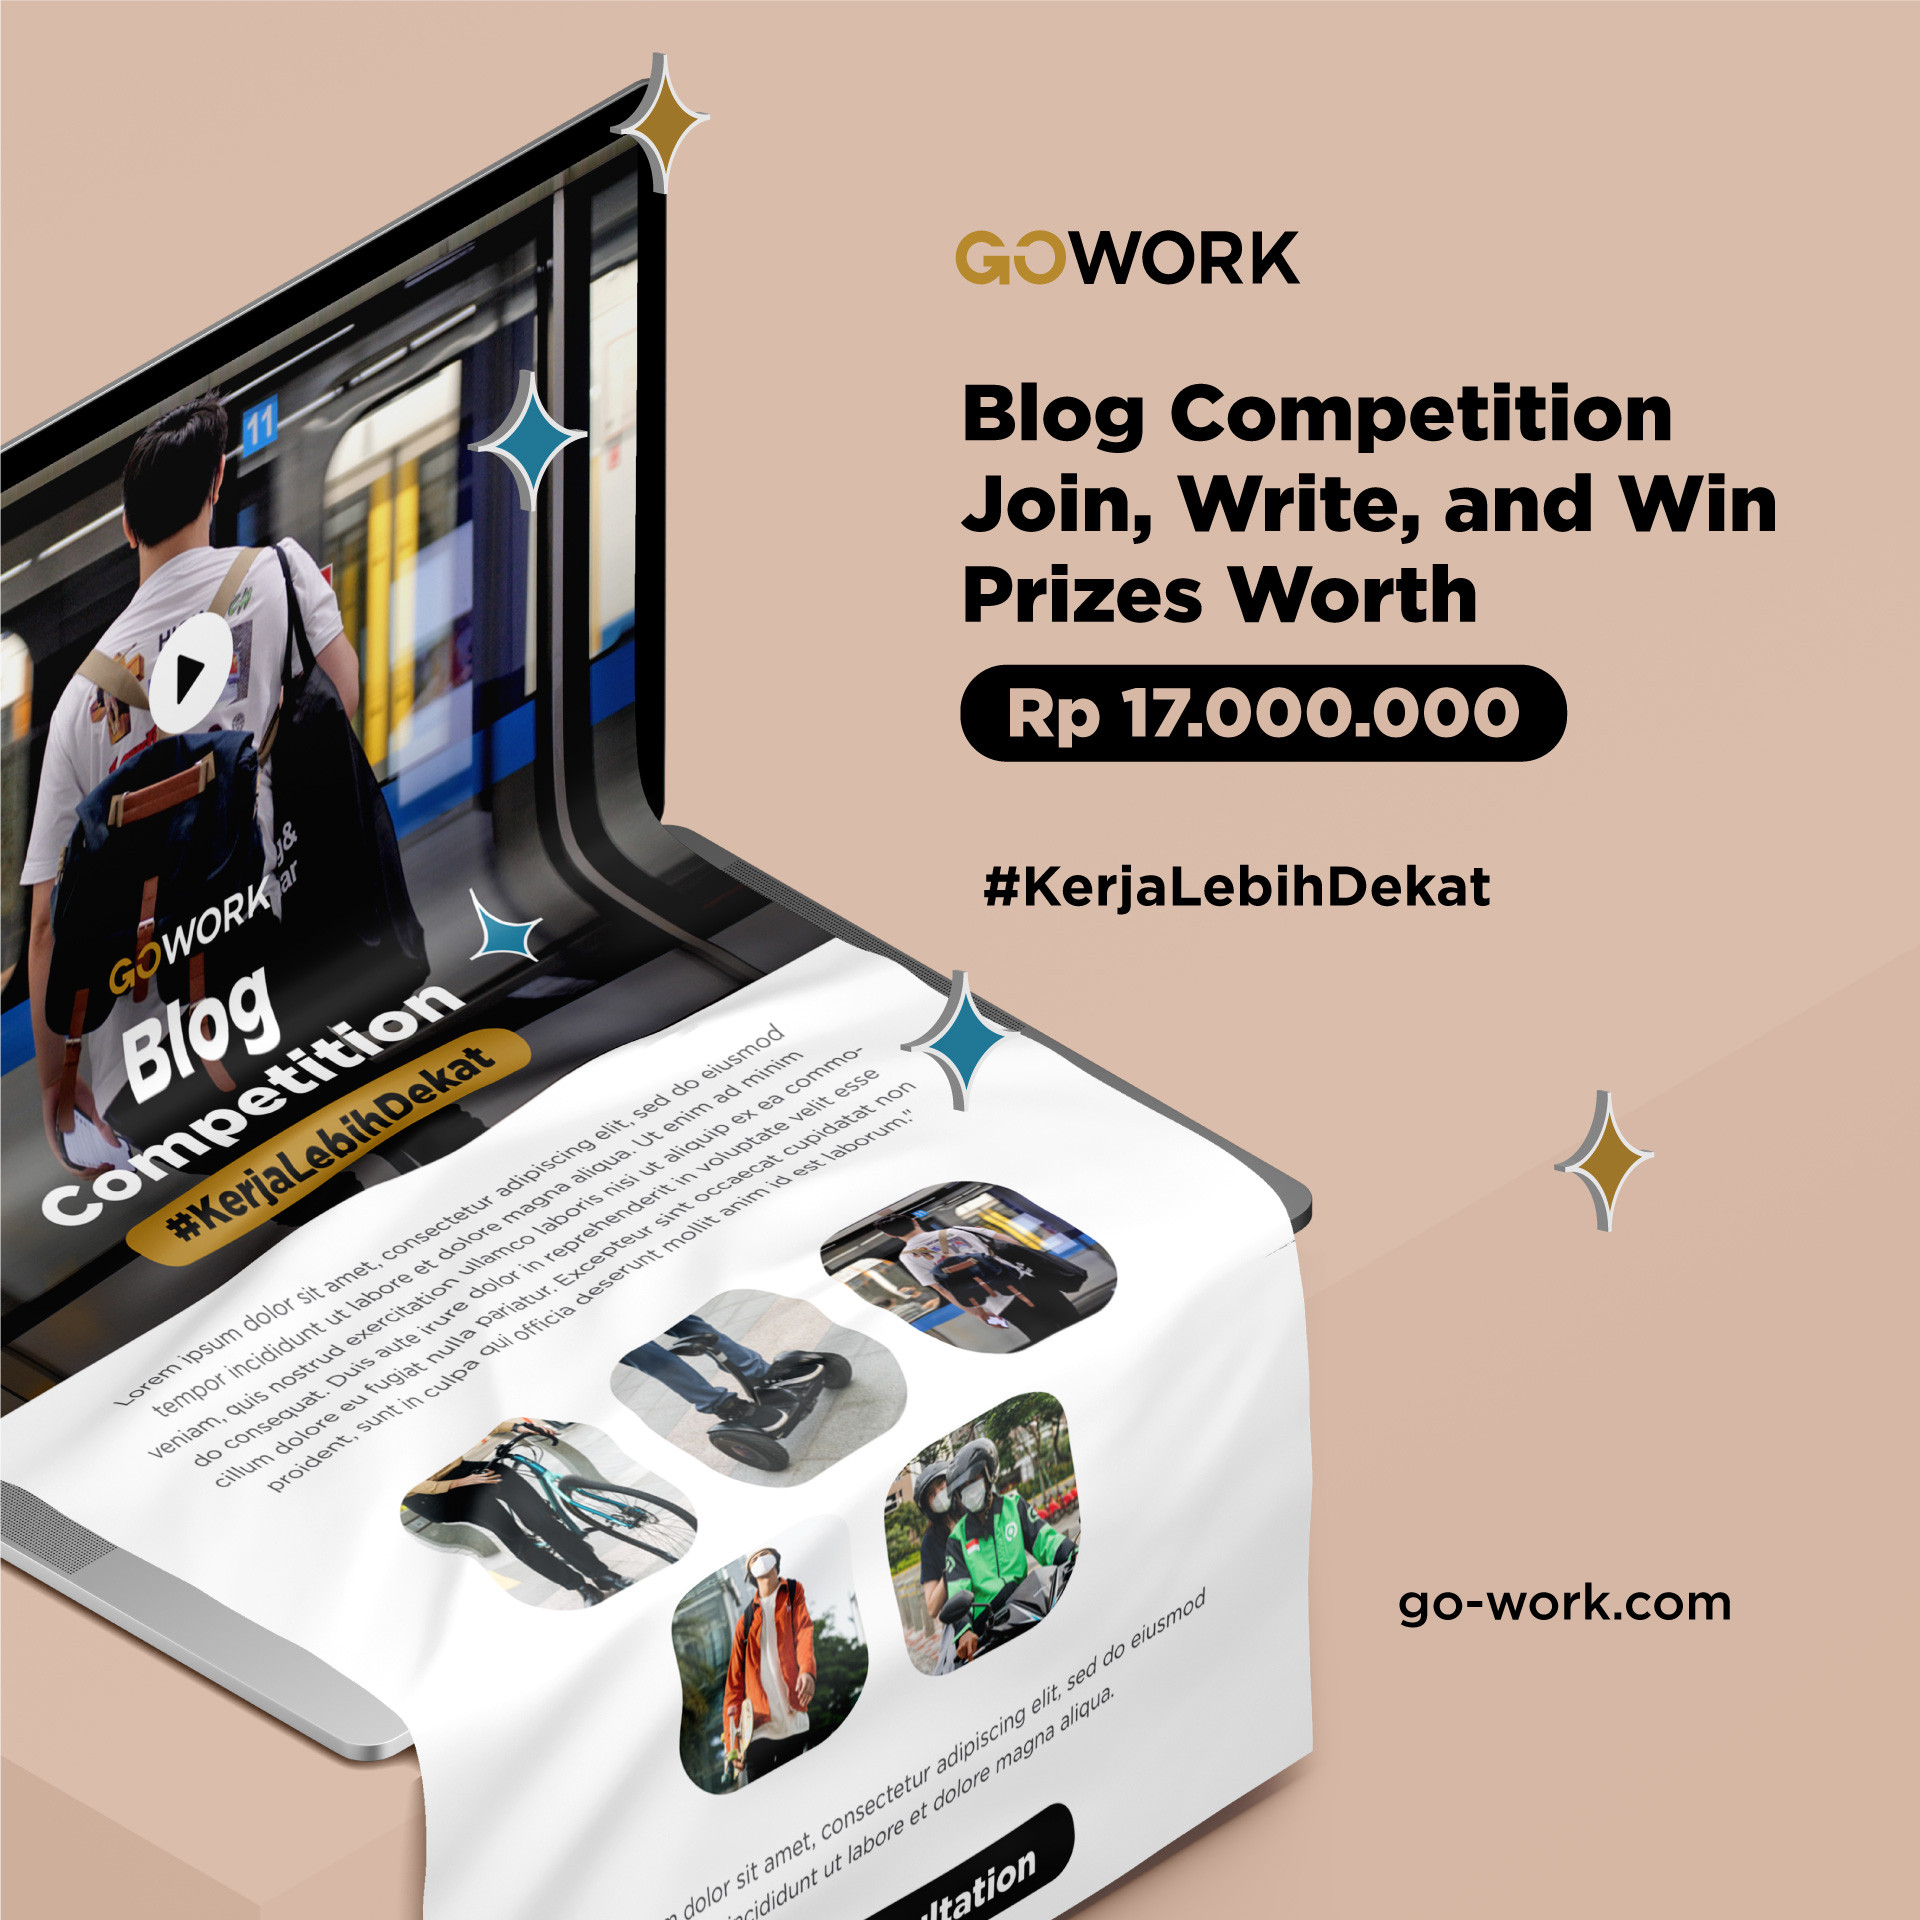 GoWork Blog Competition 2021